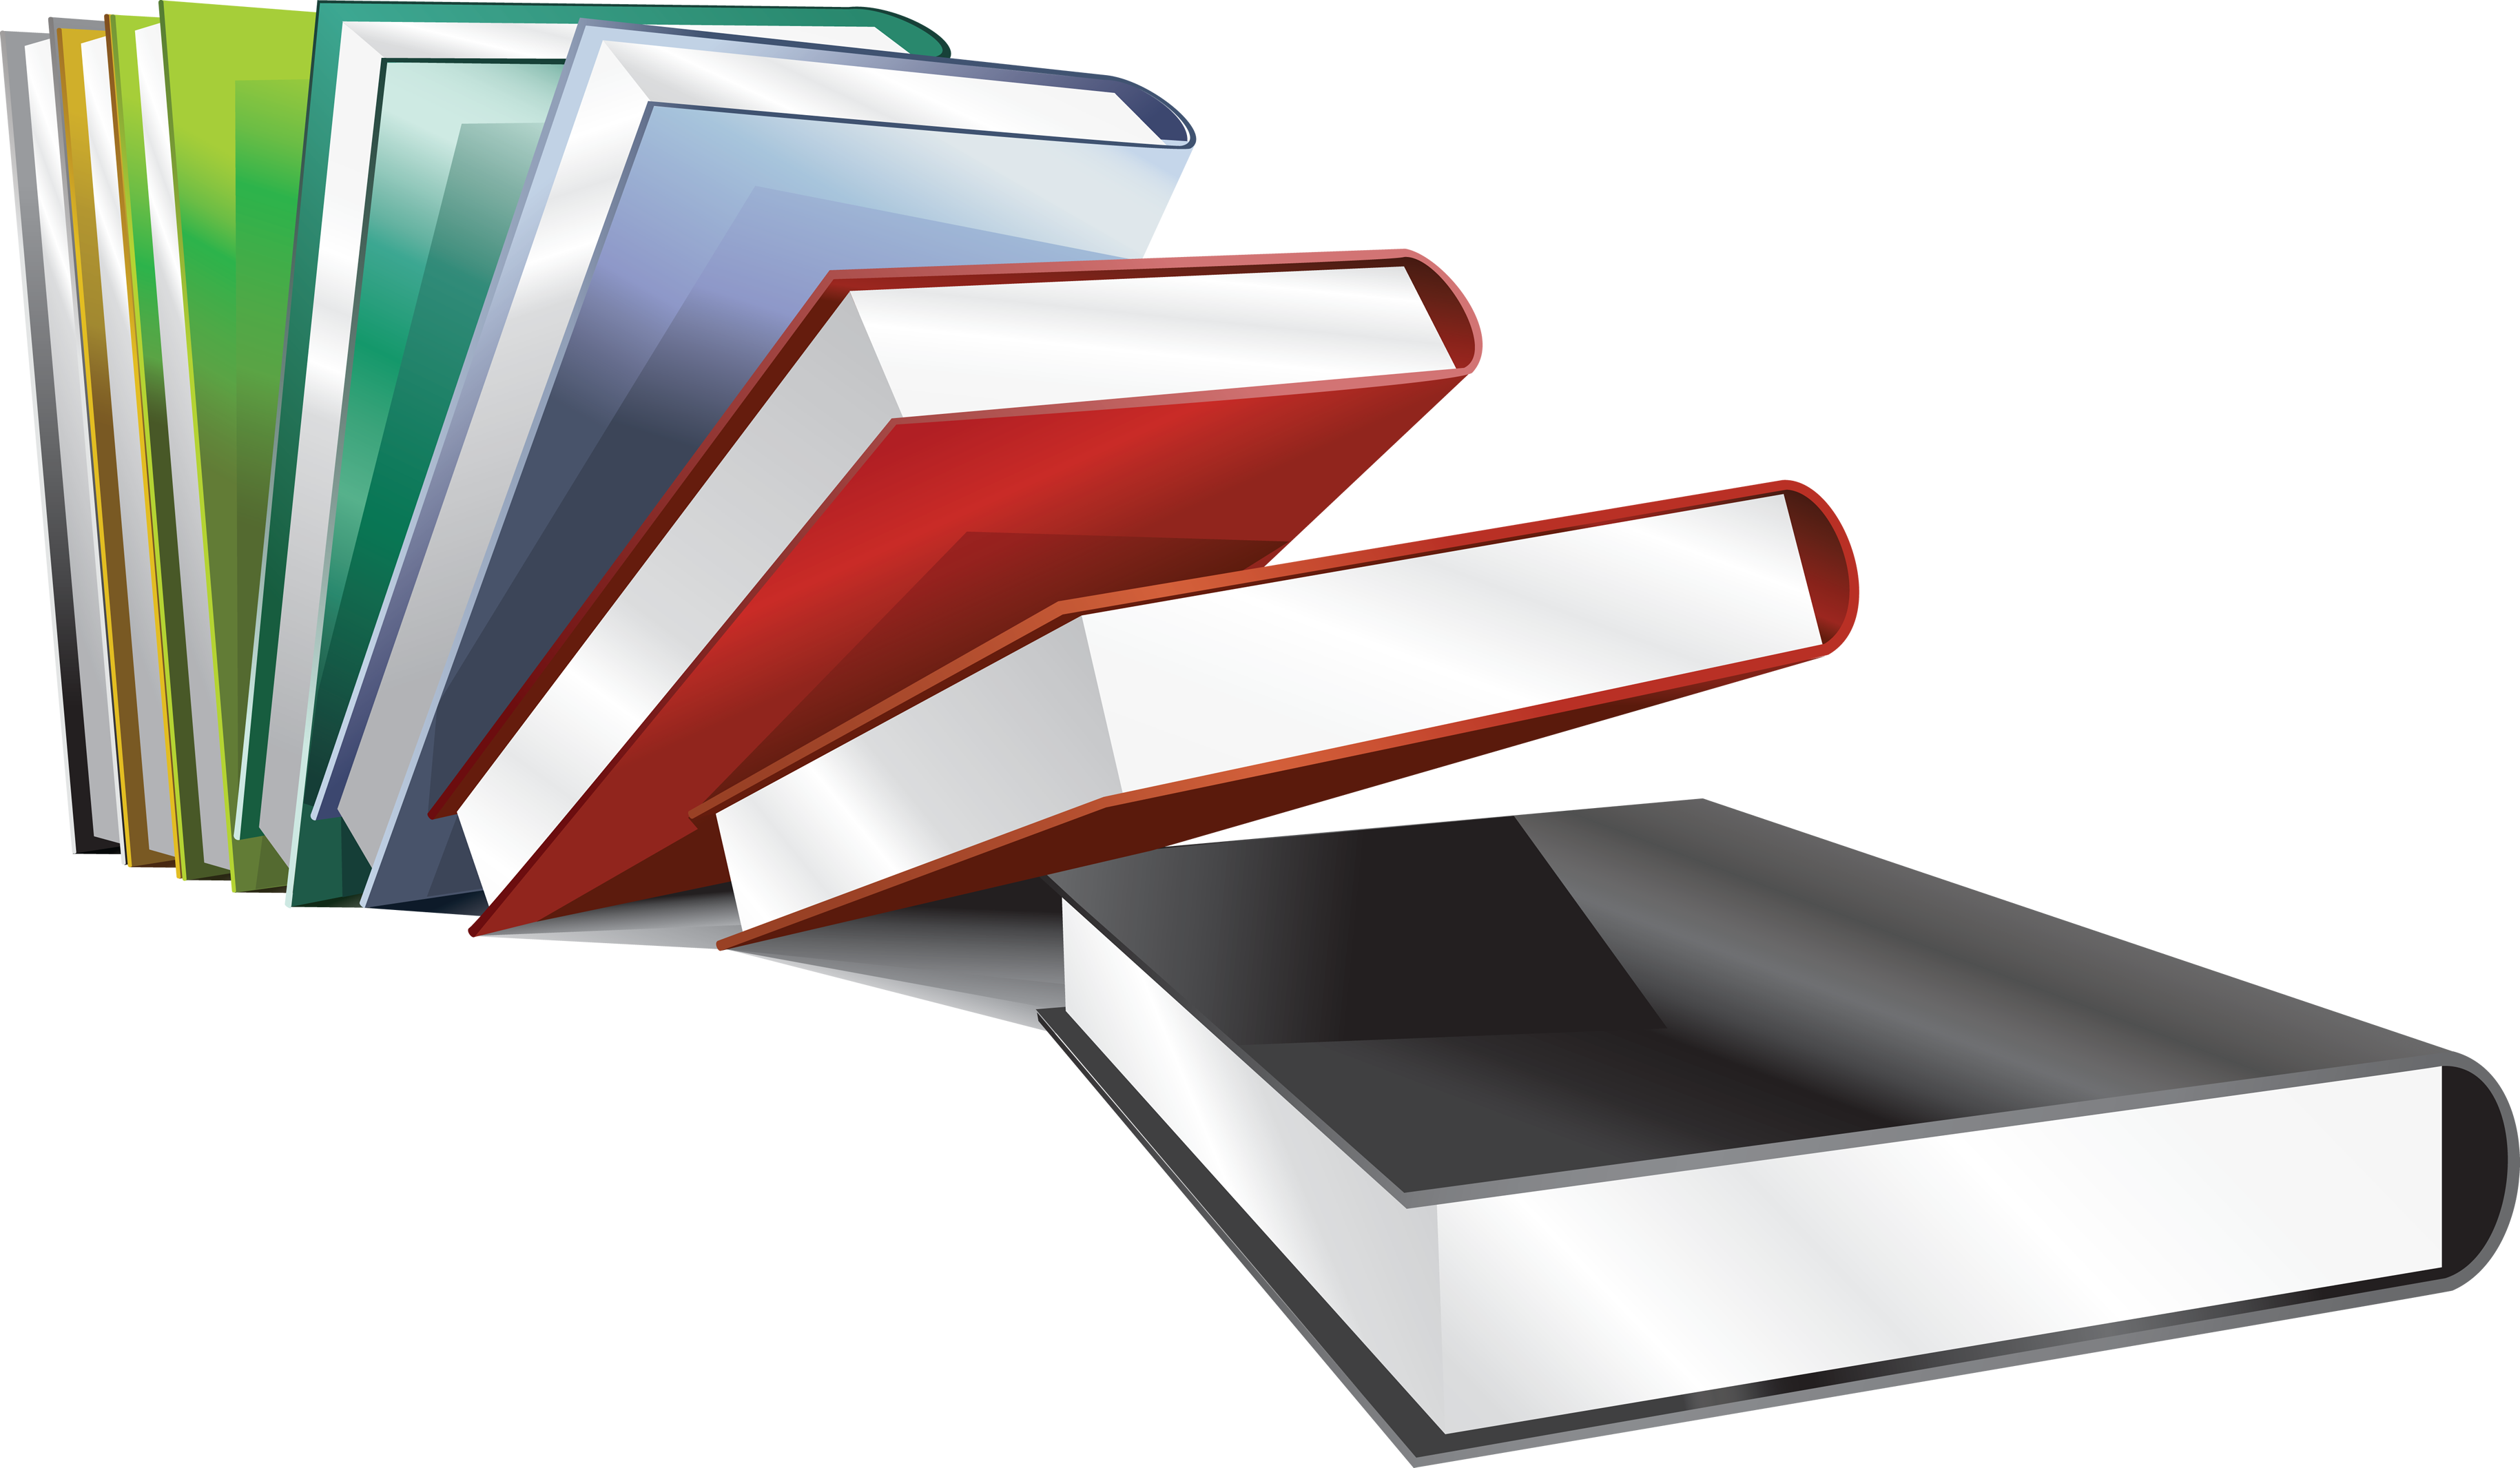 Book PNG - 23984